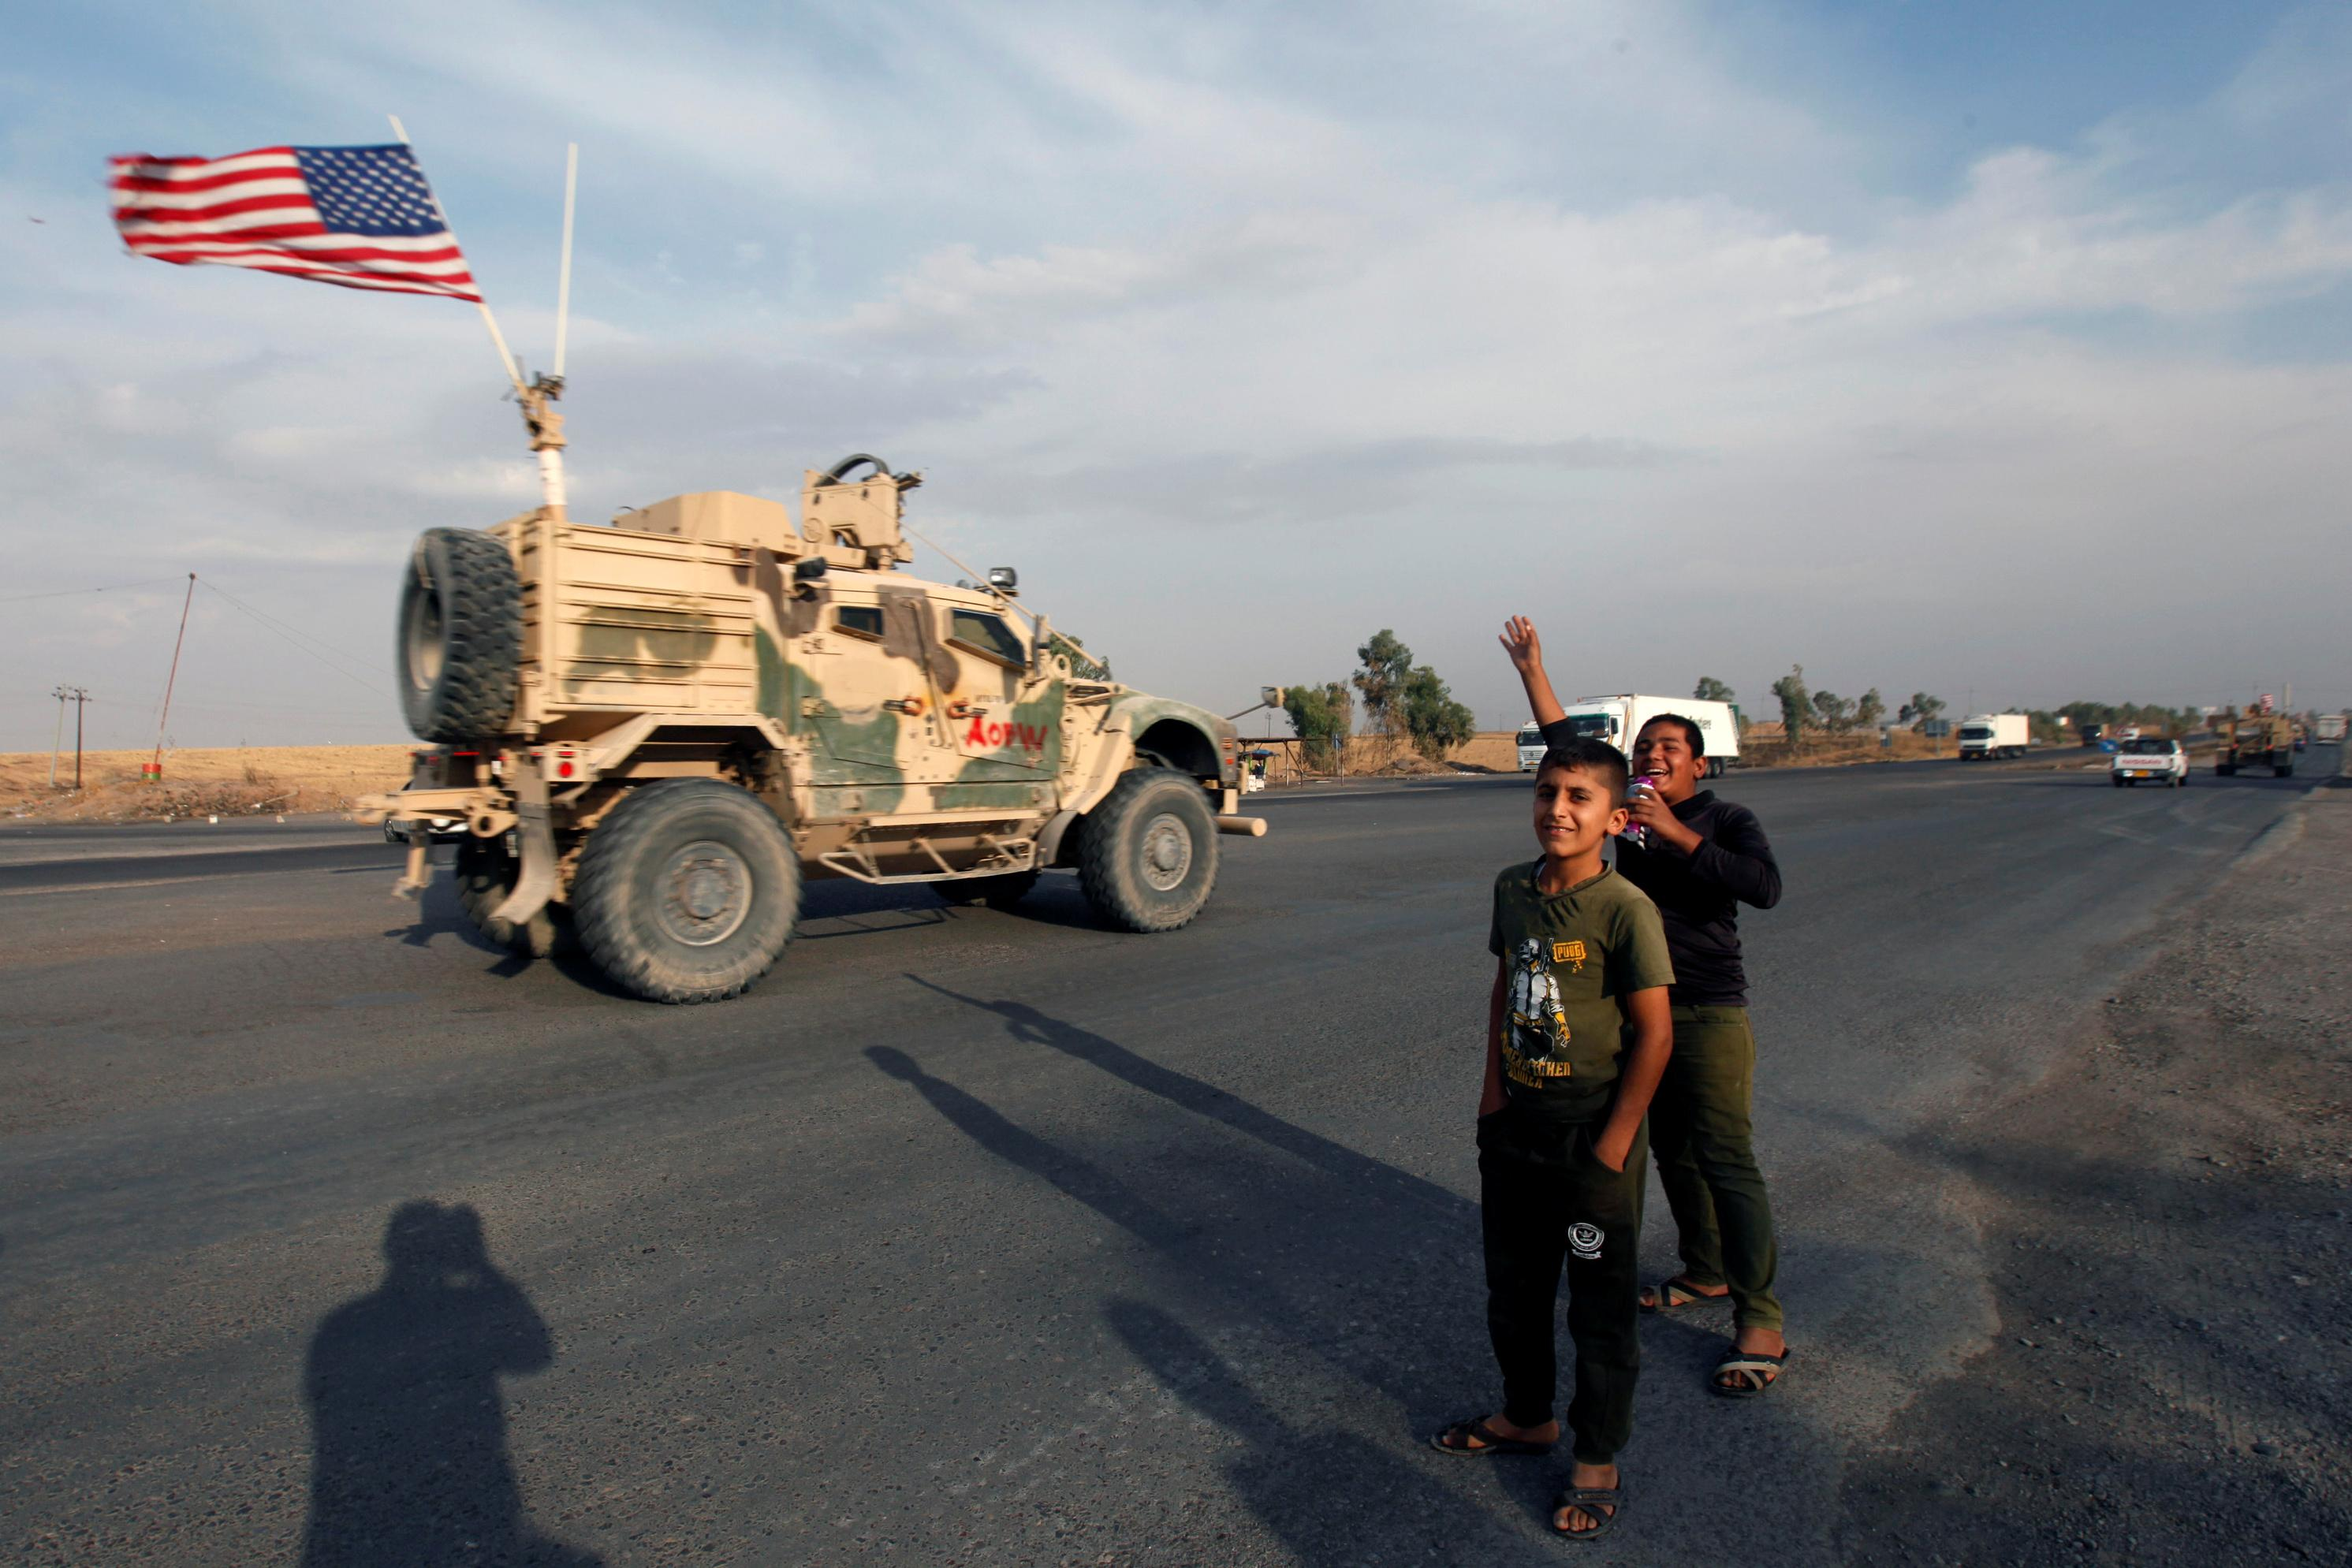 U.S. forces withdrawing from Syria into Iraq have no approval to...